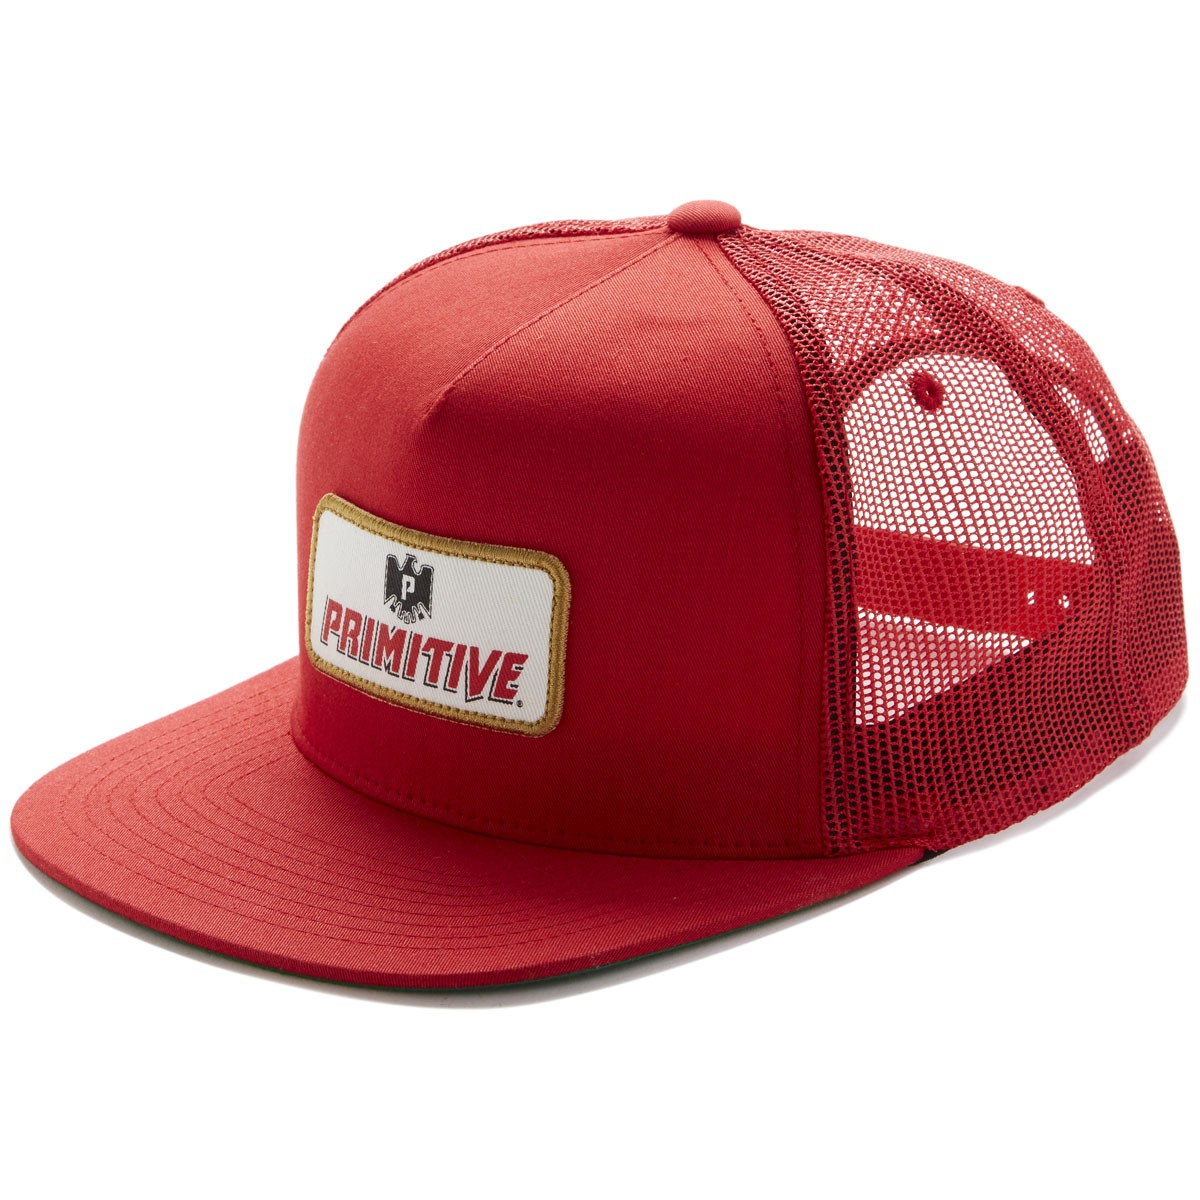 Primitive Cerveza Trucker Hat - Red